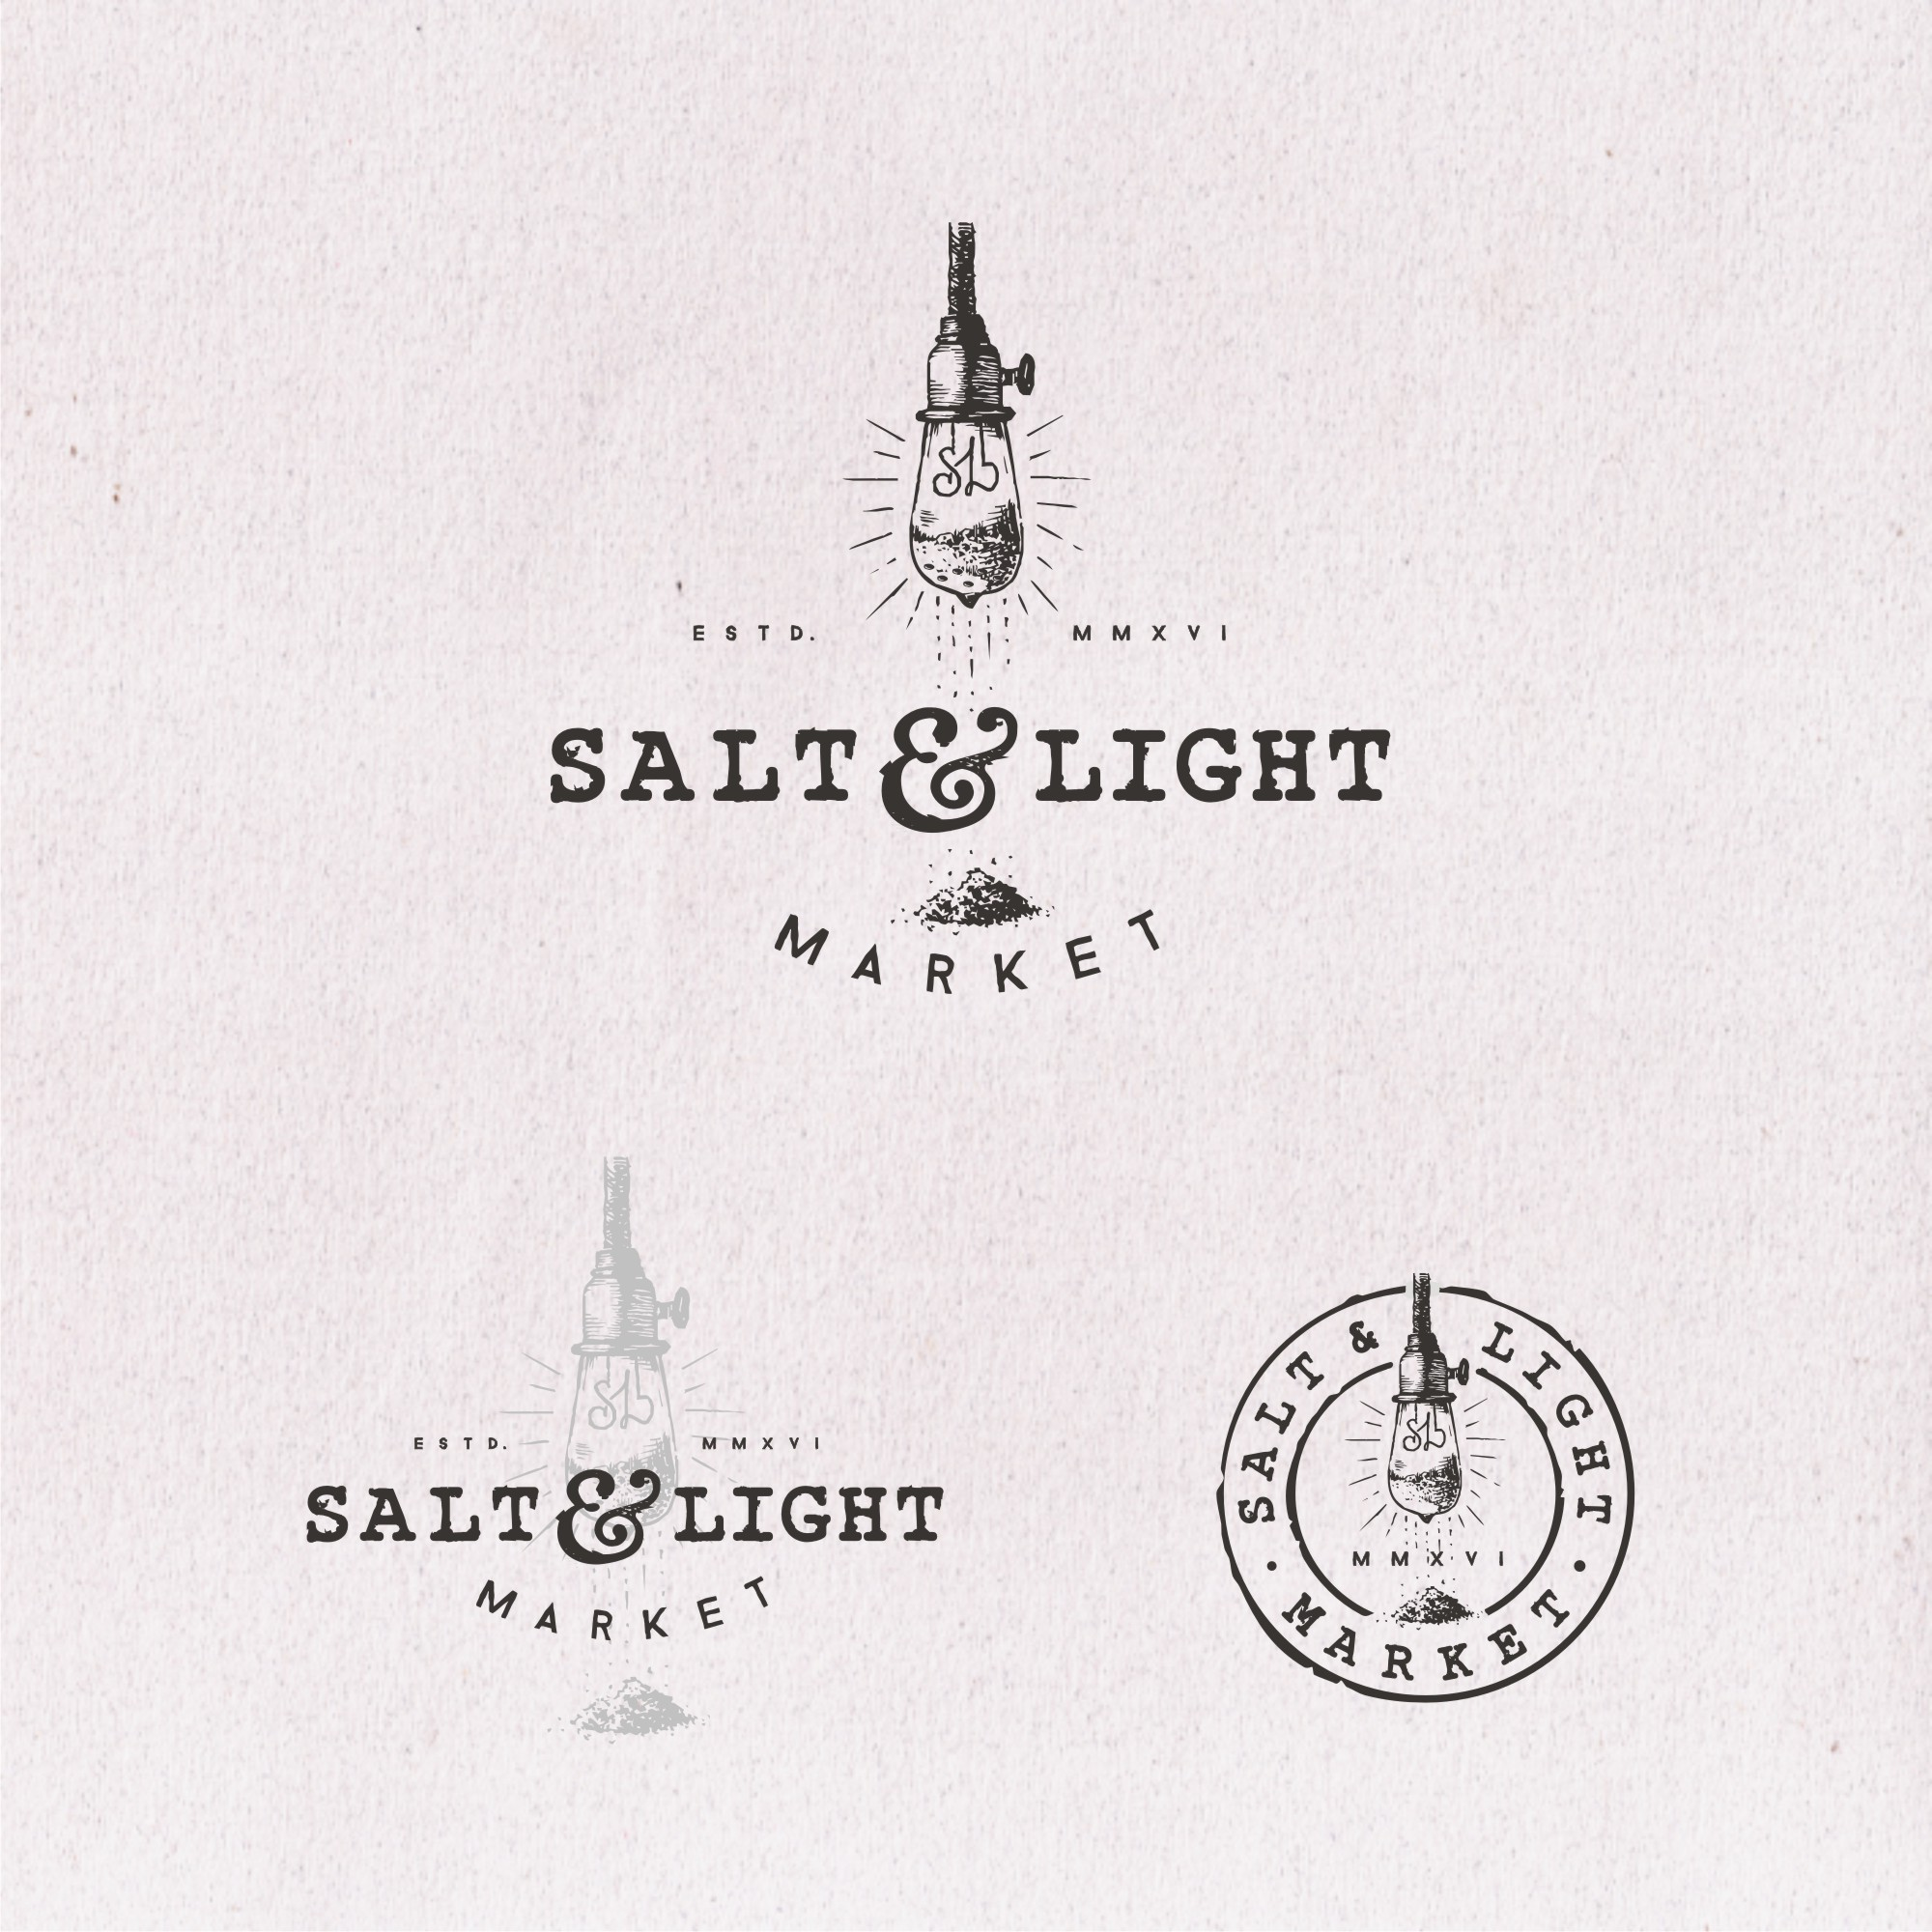 Contest entries for Salt & Light in their 99designs logo contest.